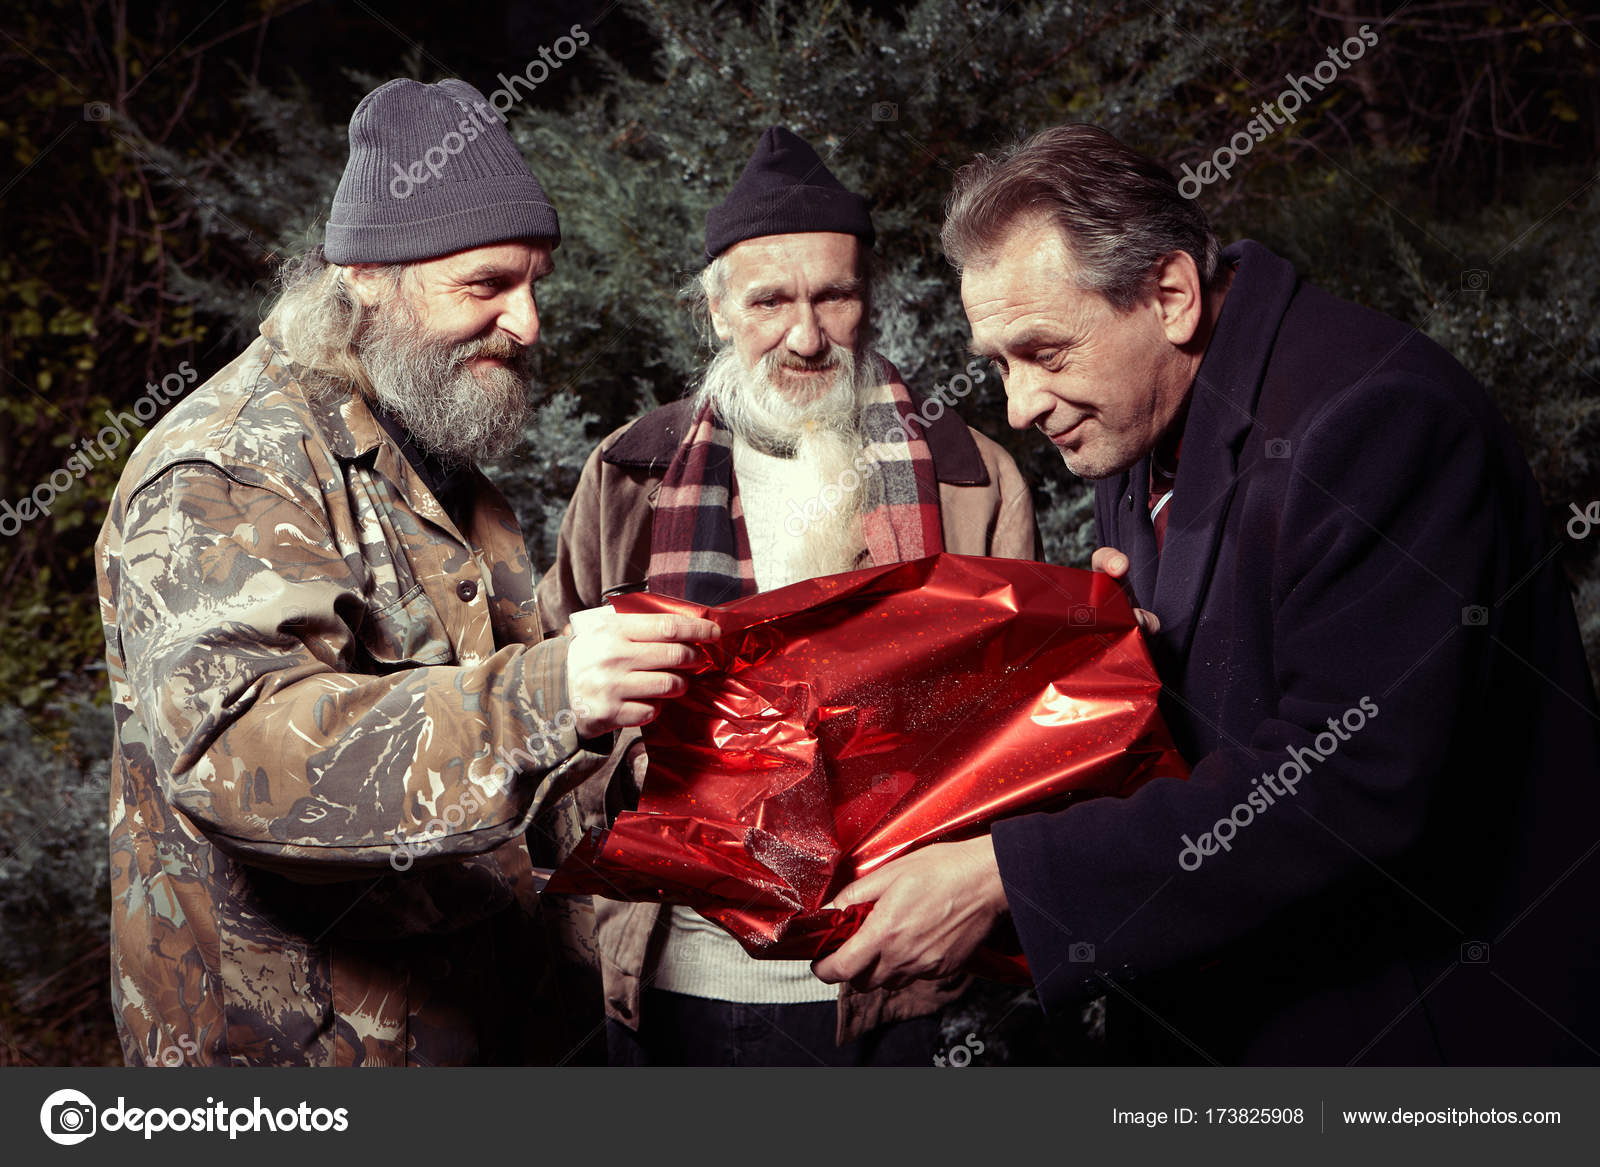 Man In Suit Get A Christmas Gift From Two Homeless Men Stock Photo